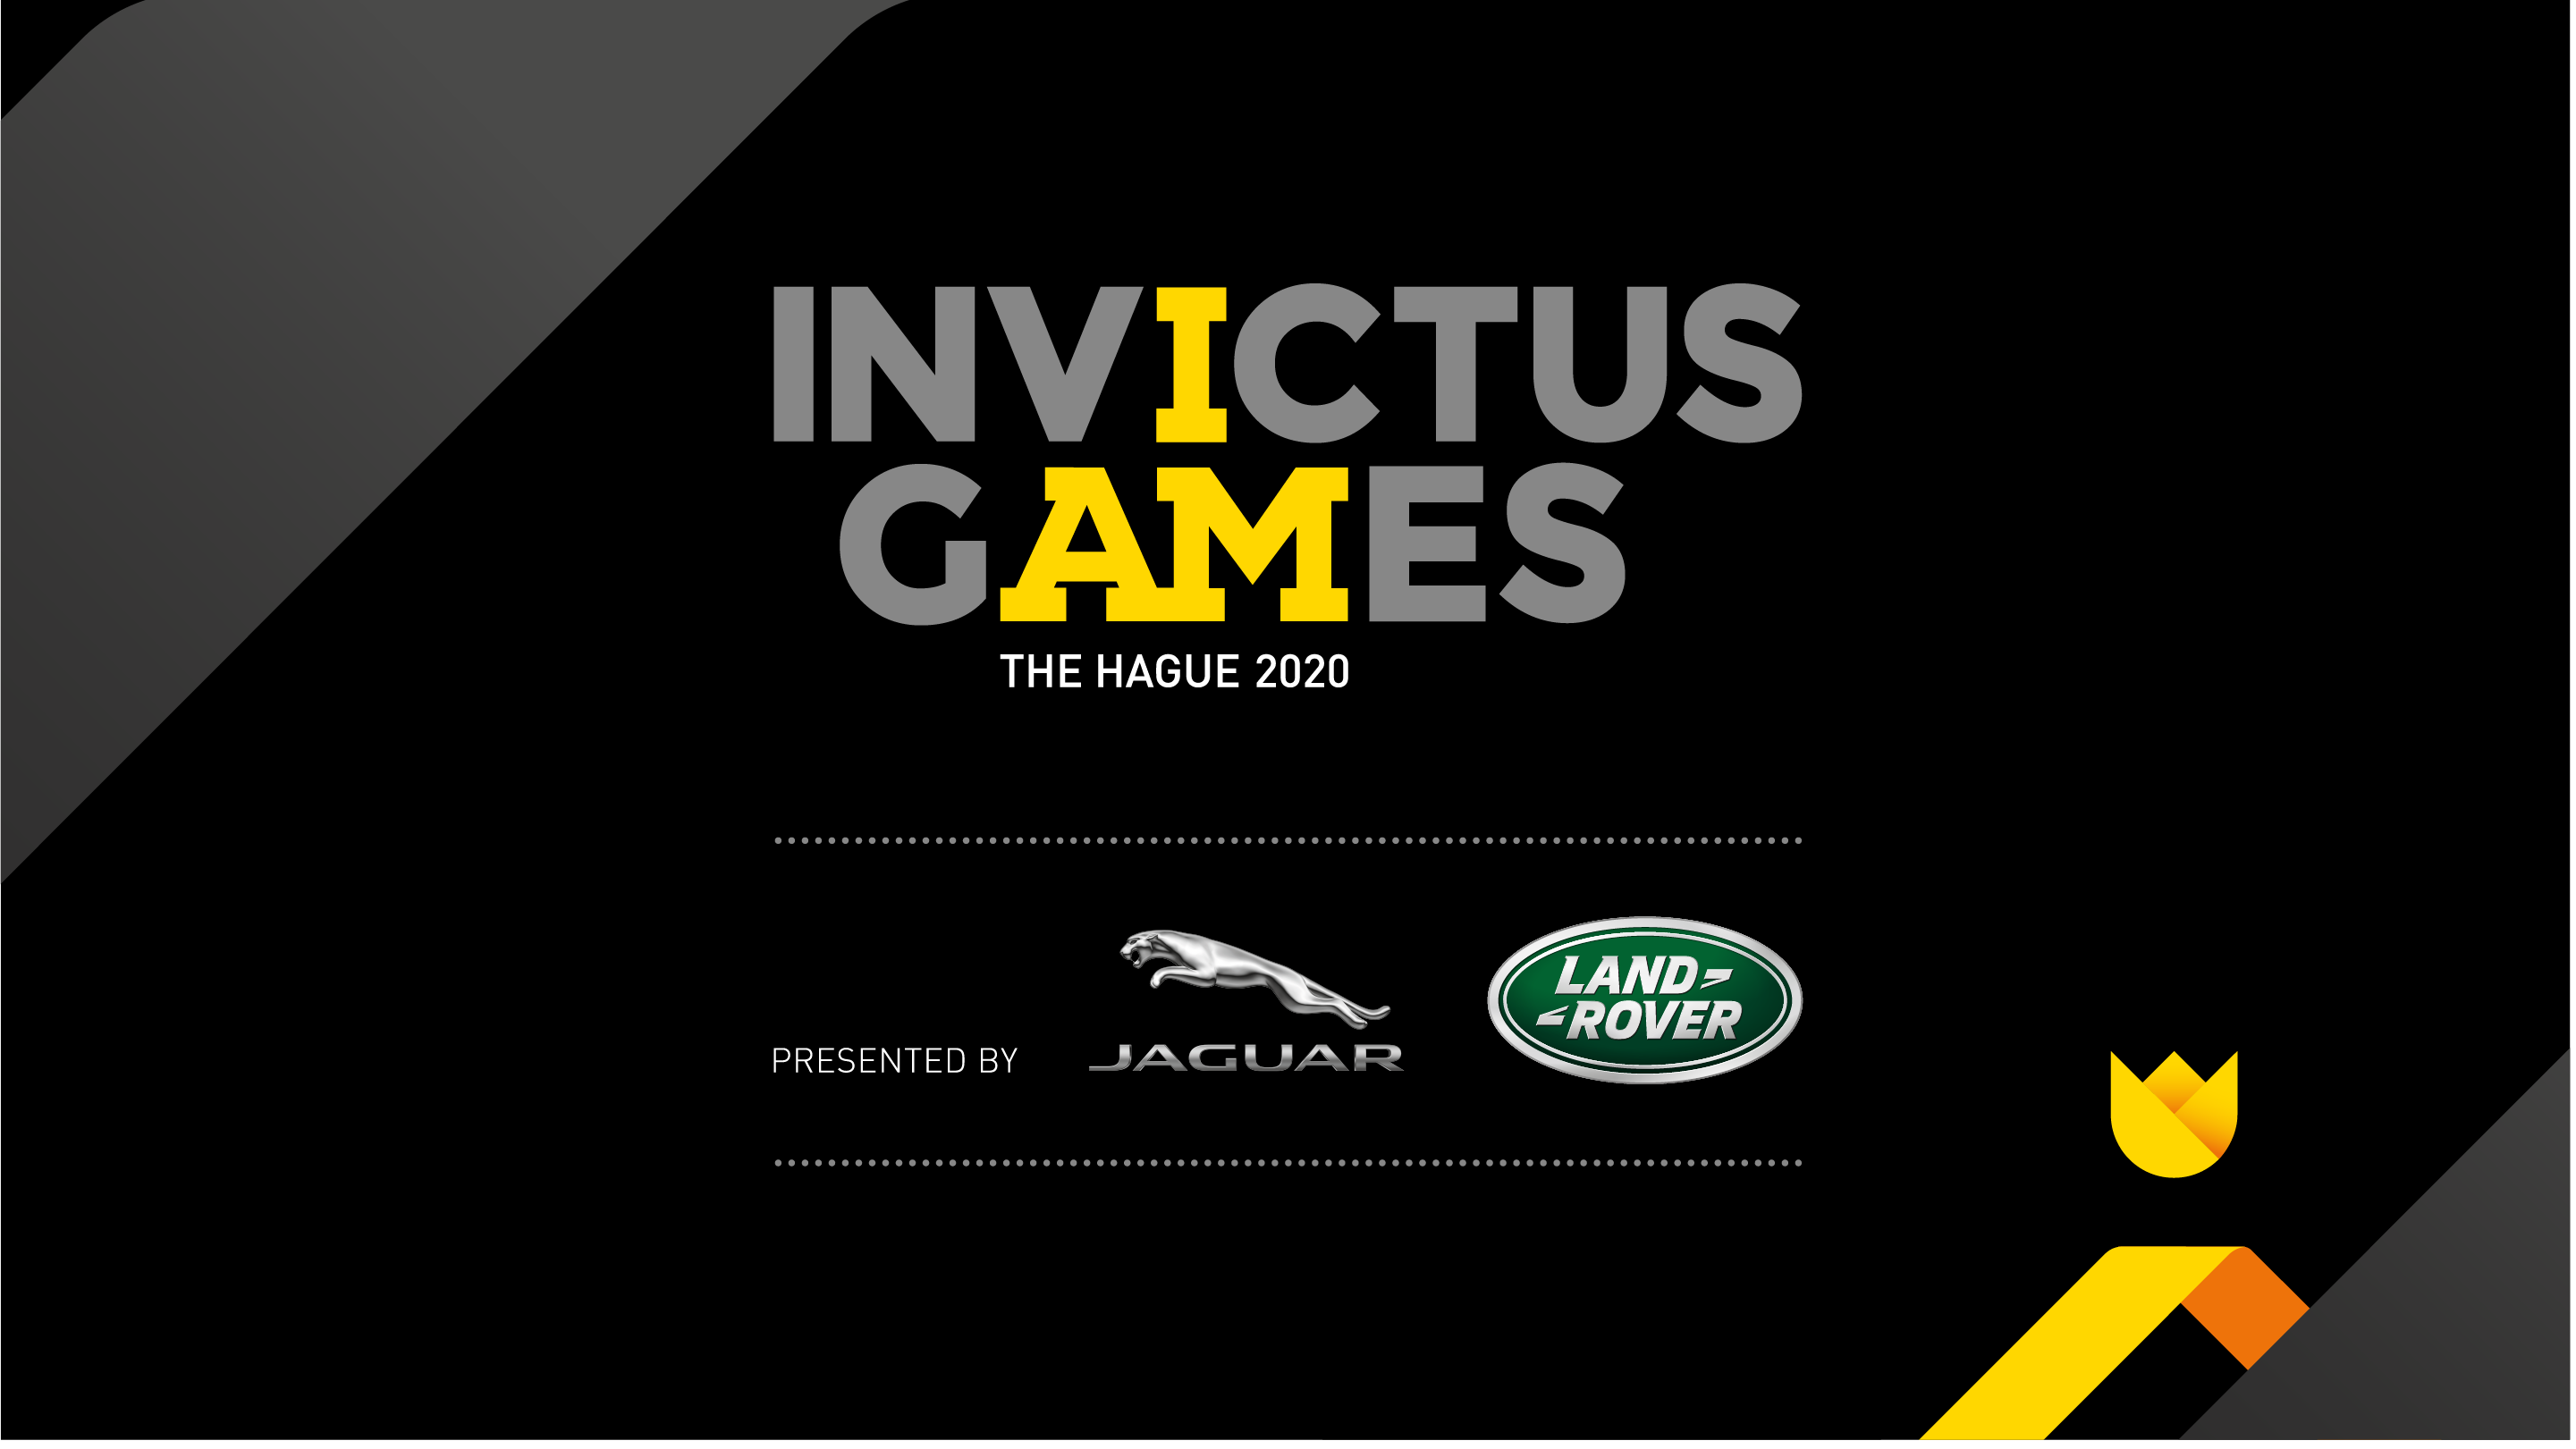 https://invictusgamesfoundation.org/wp-content/uploads/2020/03/News-item-website.png